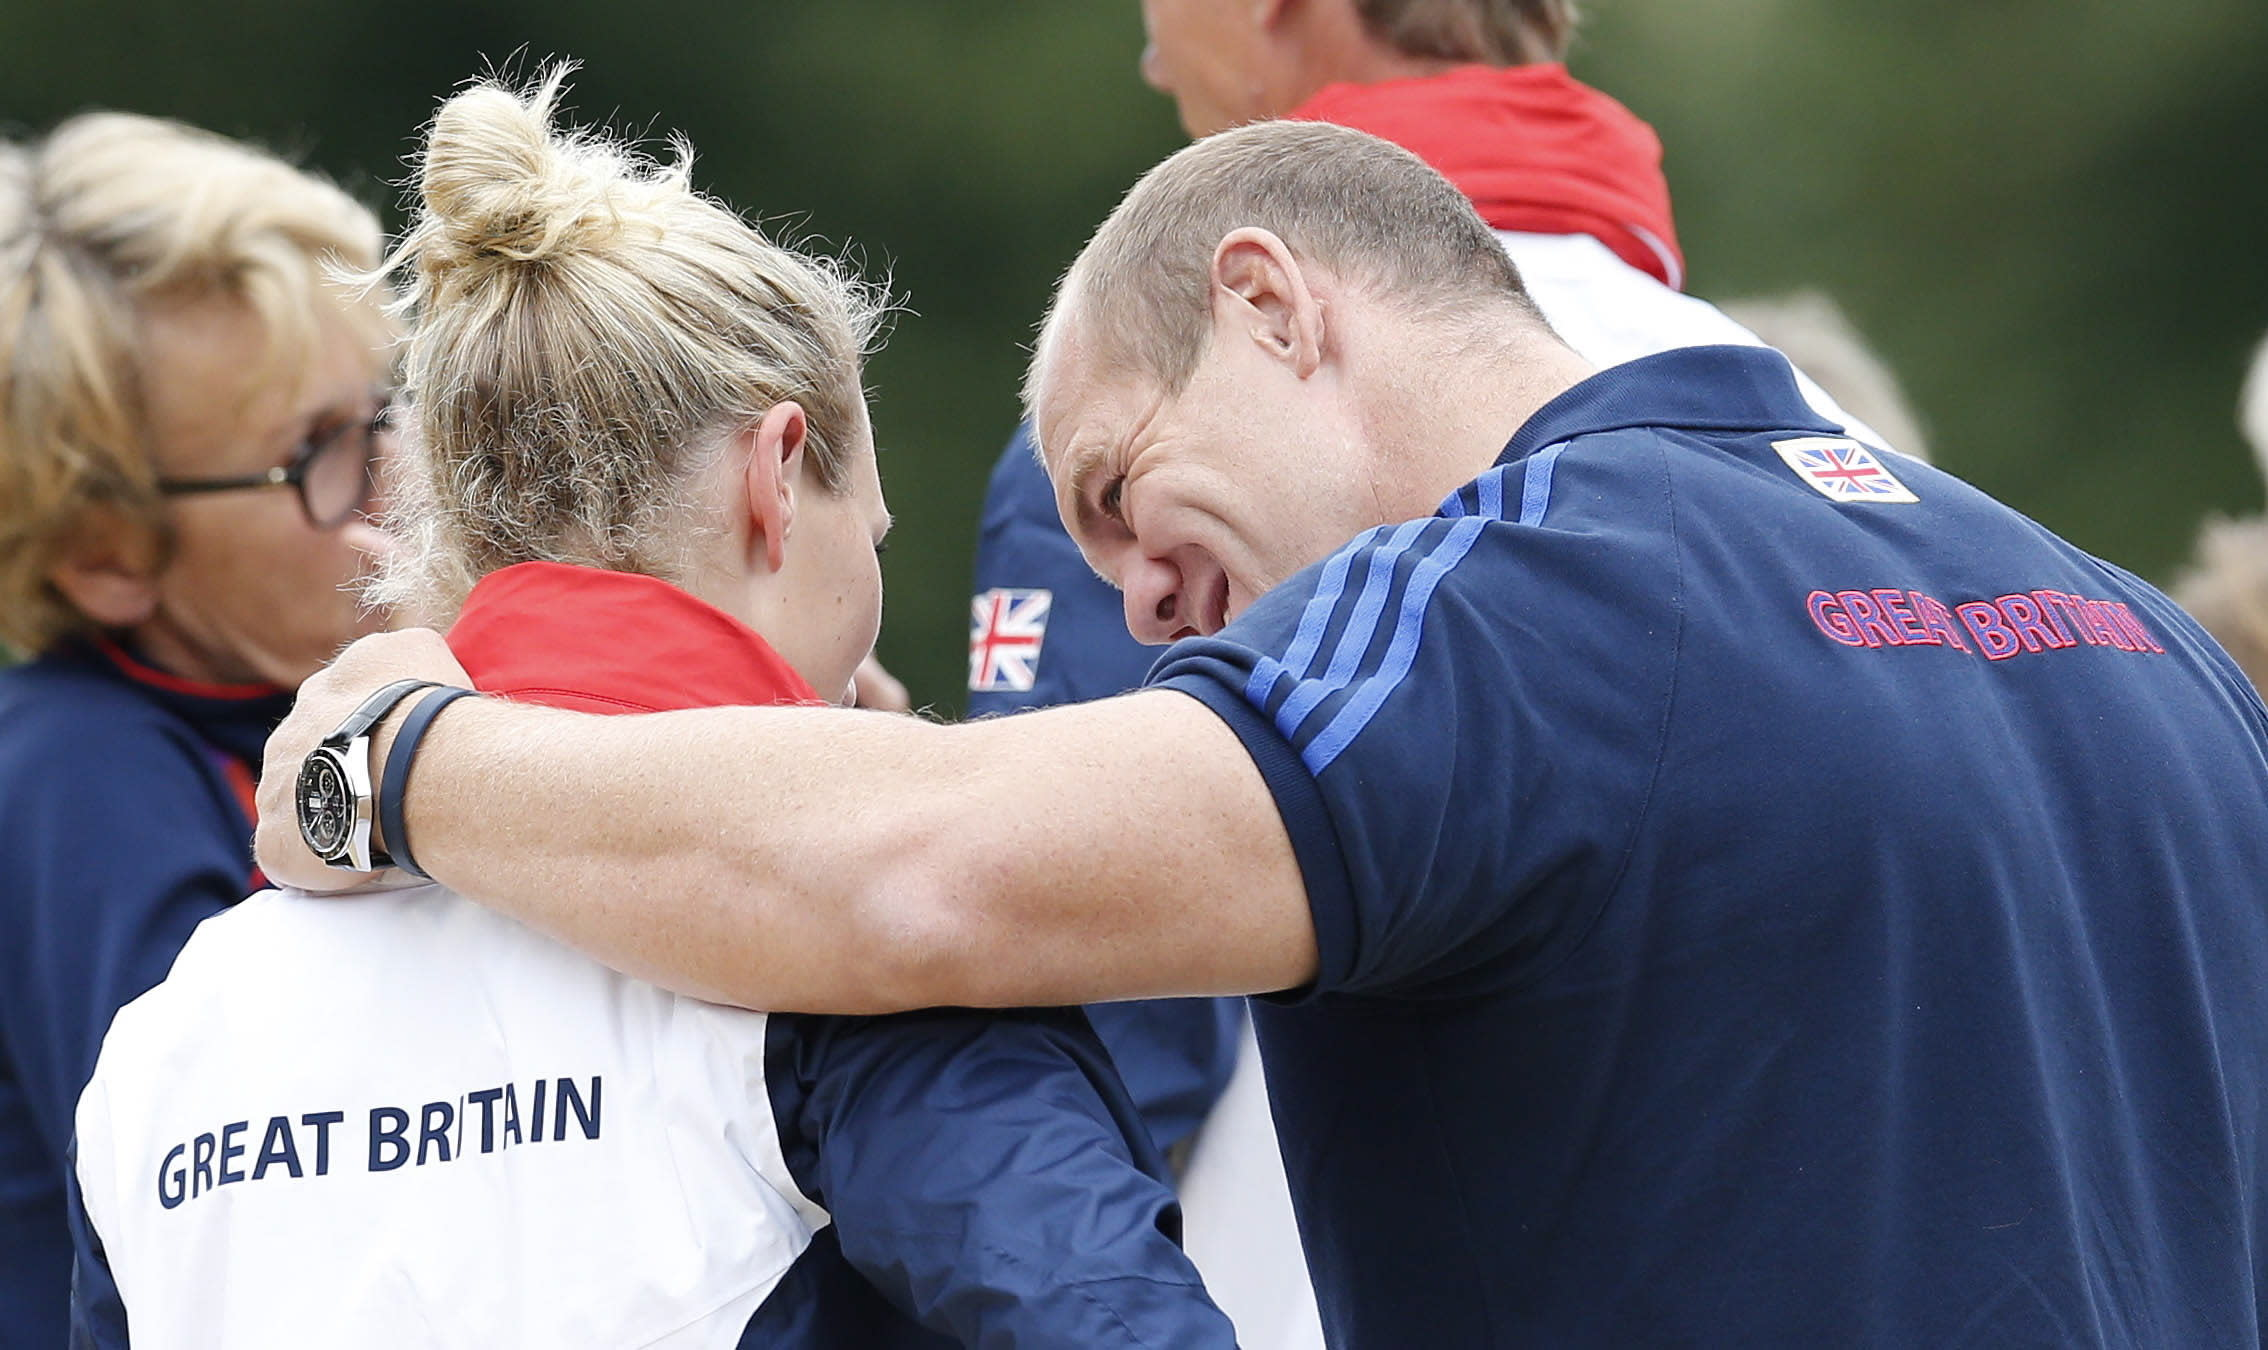 Olympics - London 2012 Olympic Games - Greenwich Park - 31/7/12  Equestrian - Eventing - Great Britain's Zara Phillips (L) with her husband England rugby player Mike Tindall after her jumping qualifier run  Mandatory Credit: Action Images / Andrew Boyers  Livepic  PLEASE NOTE: FOR EDITORIAL USE ONLY